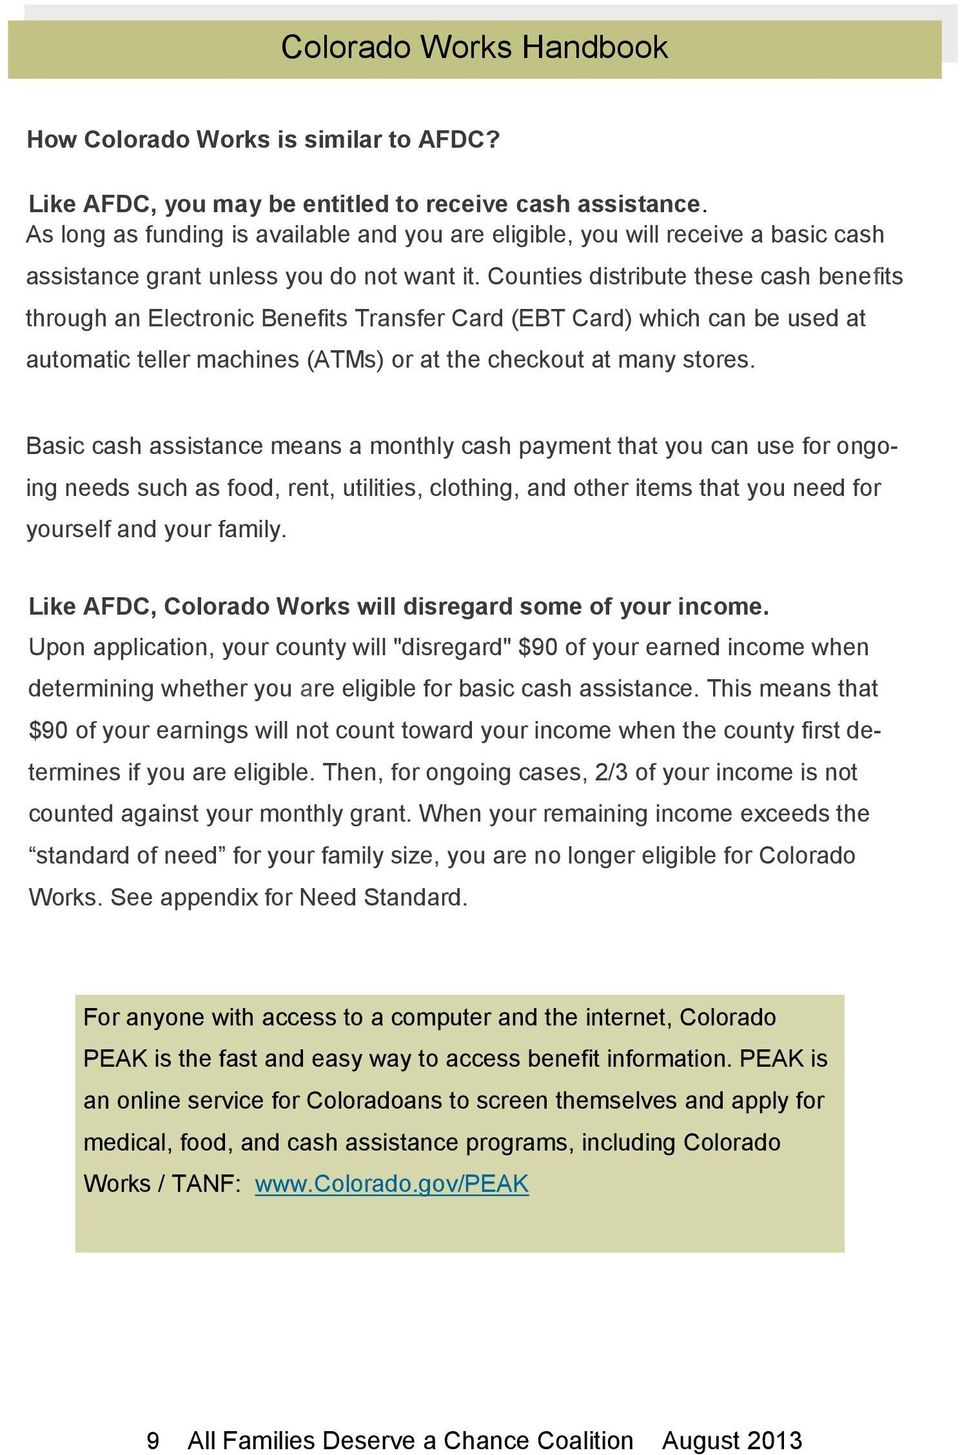 Colorado Works Handbook - PDF